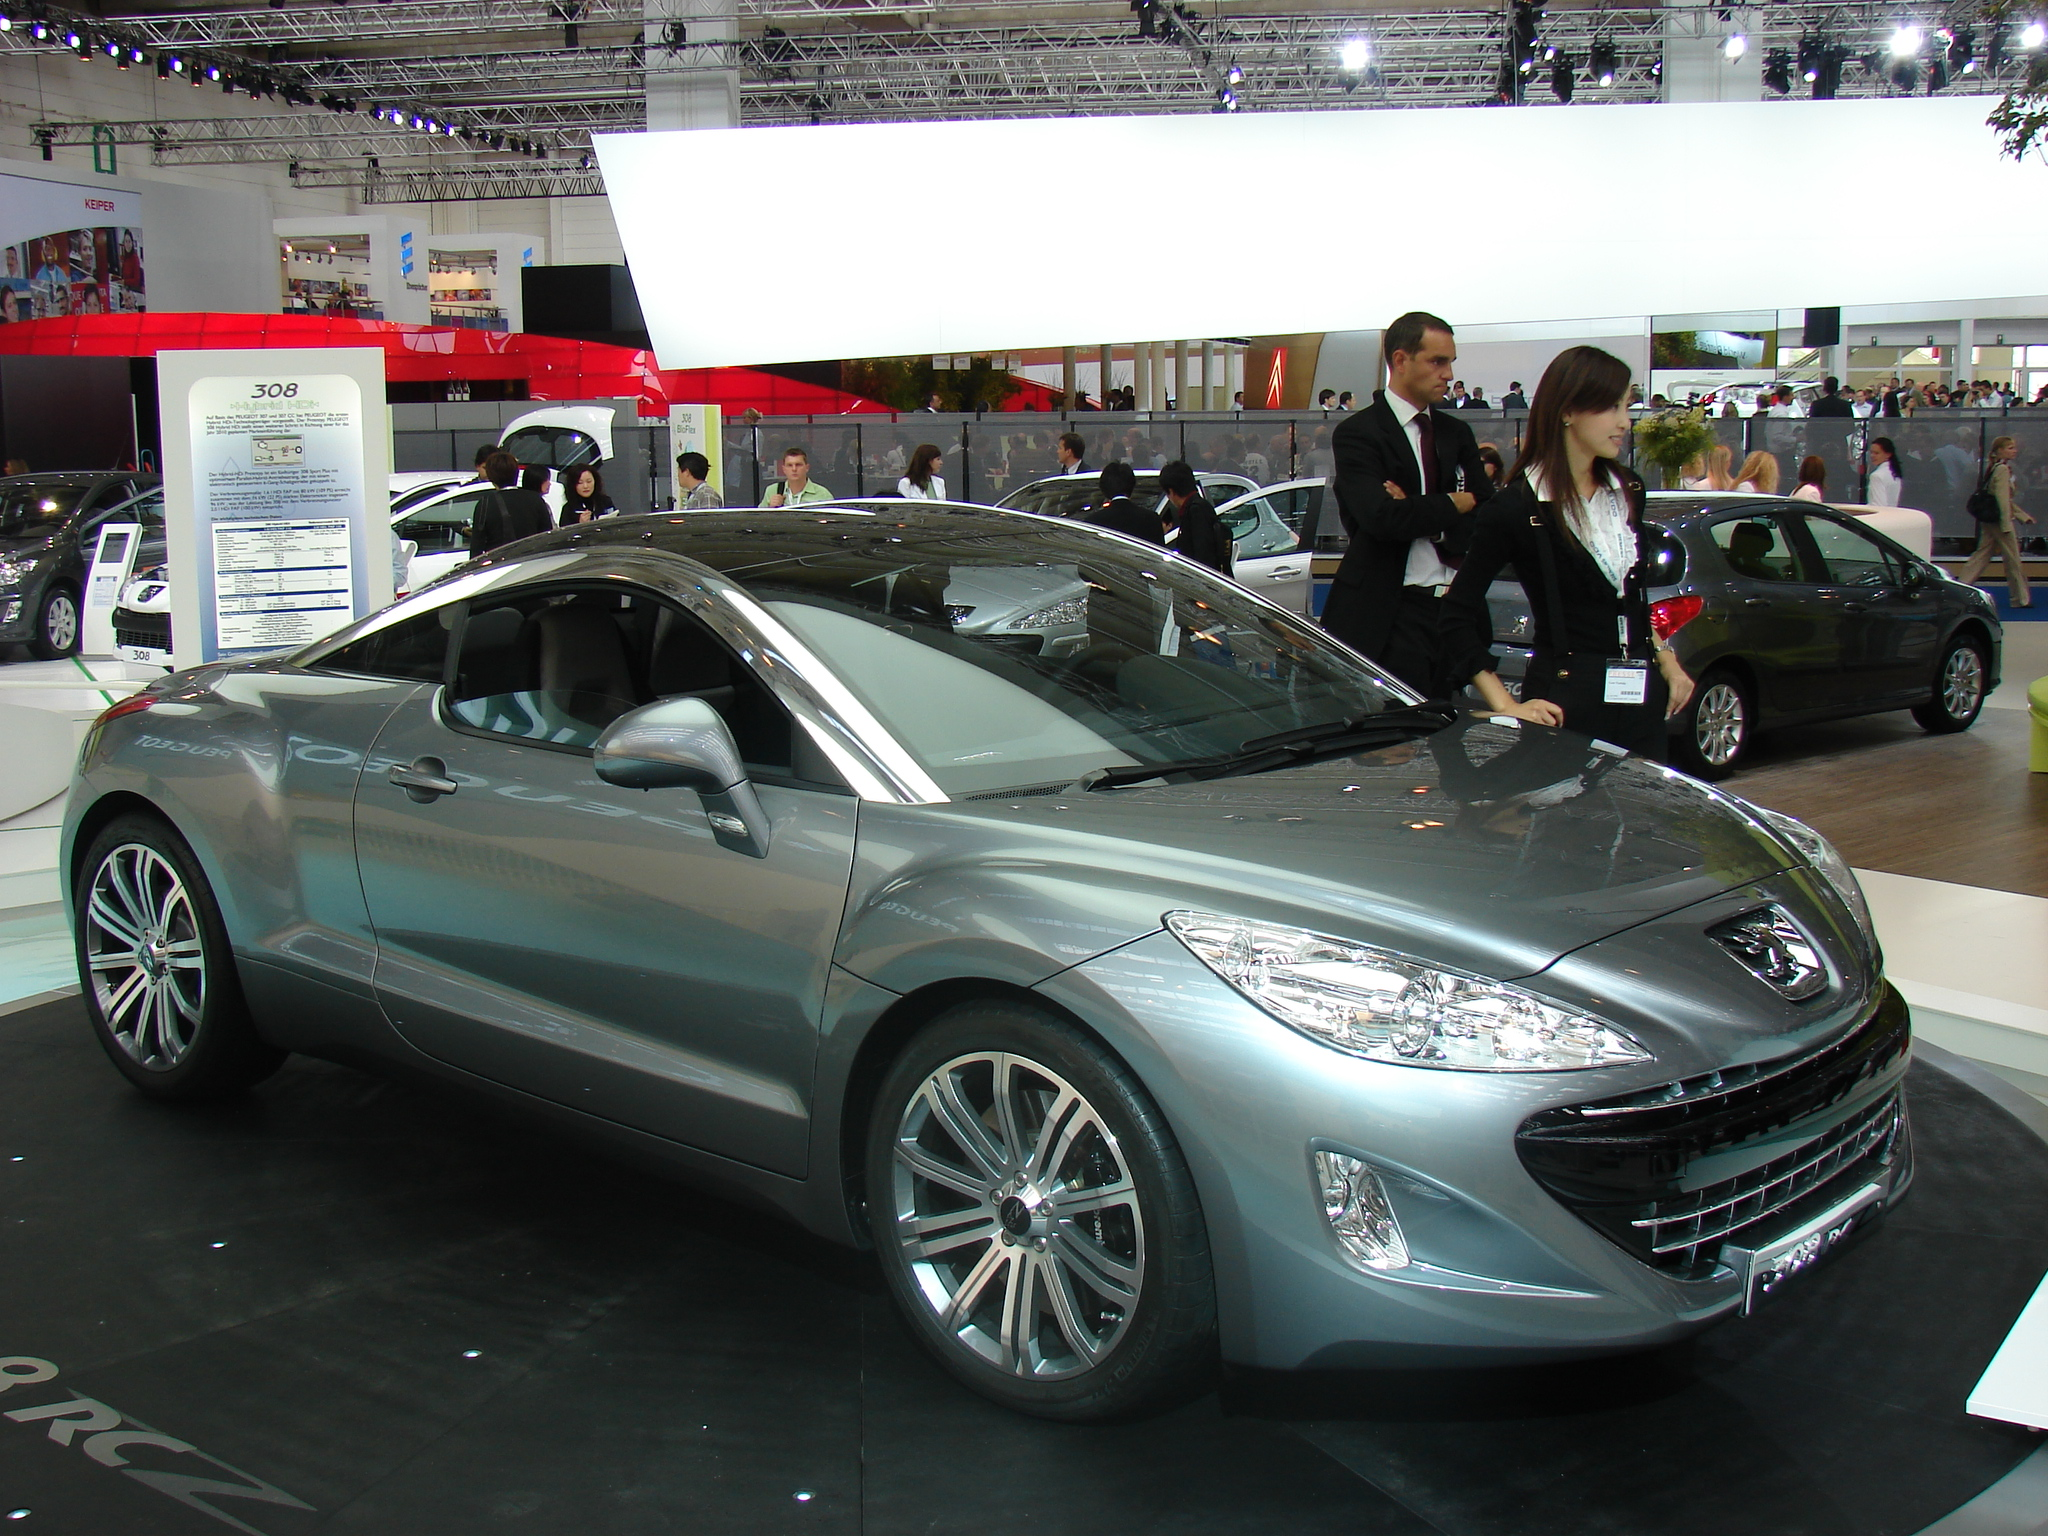 photos peugeot 308 rcz concept. Black Bedroom Furniture Sets. Home Design Ideas